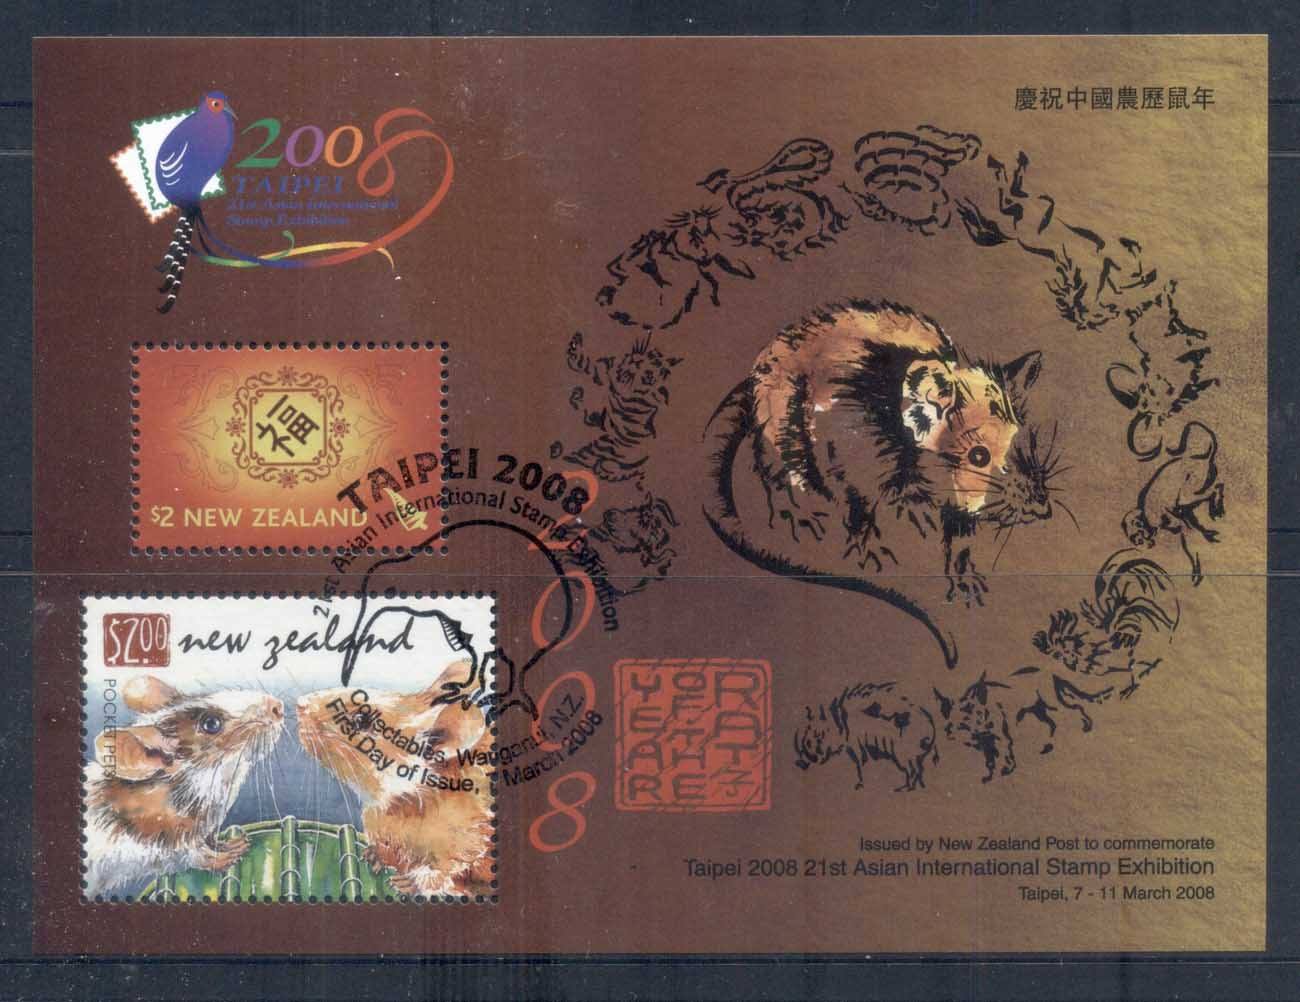 New Zealand 2008 New Year of the Rat, Pocket Pets, Taipei '08 Stamp Ex MS CTO/FDI